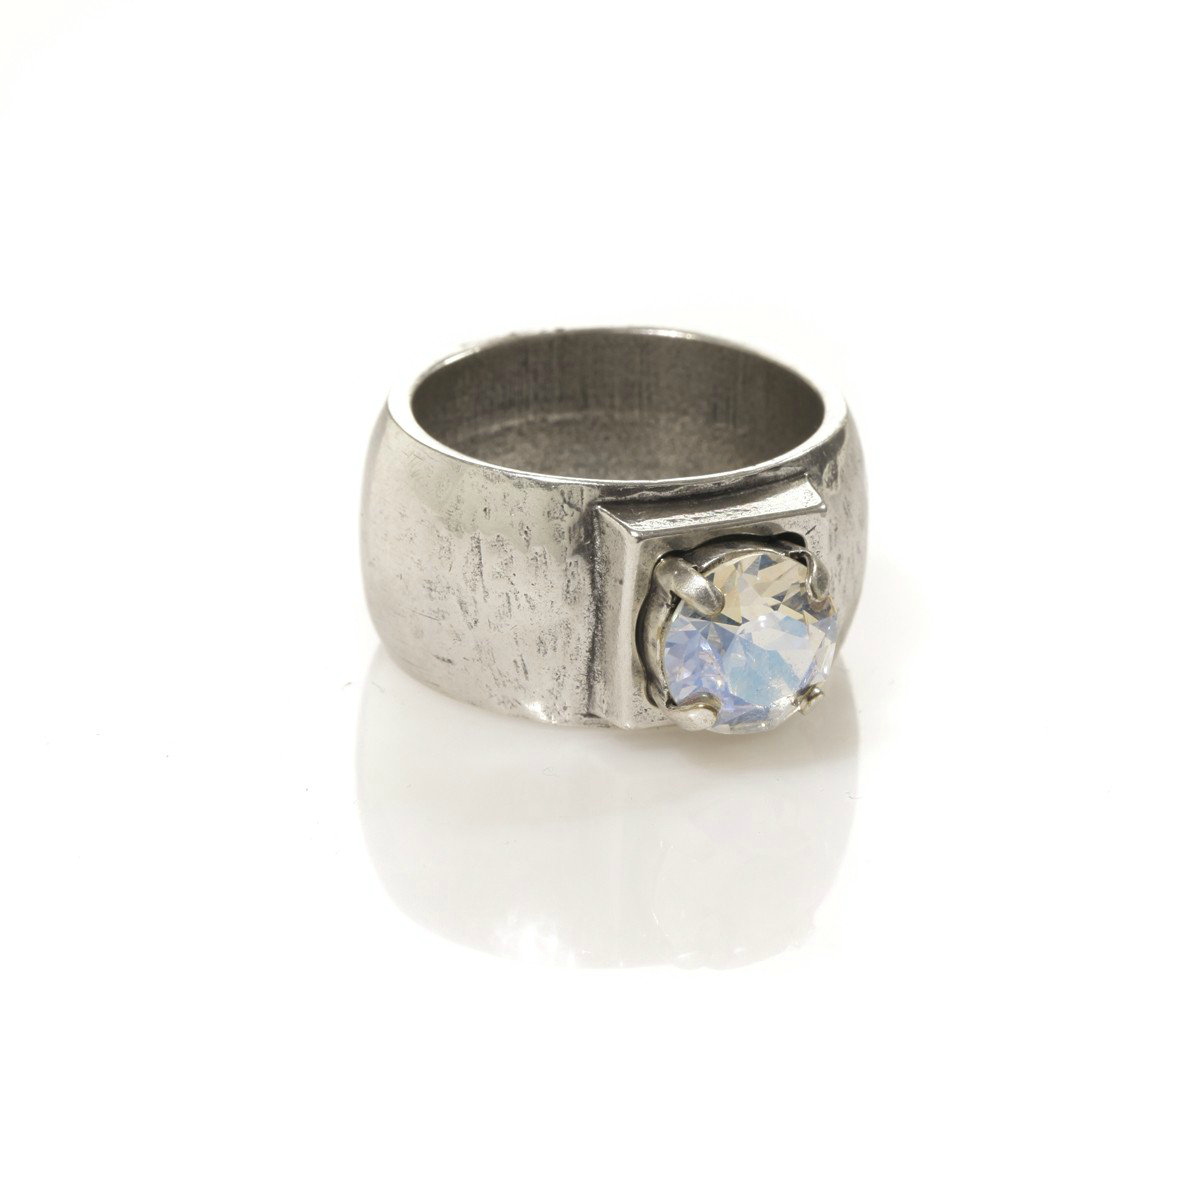 Danon Chunky Silver Ring with Crystal